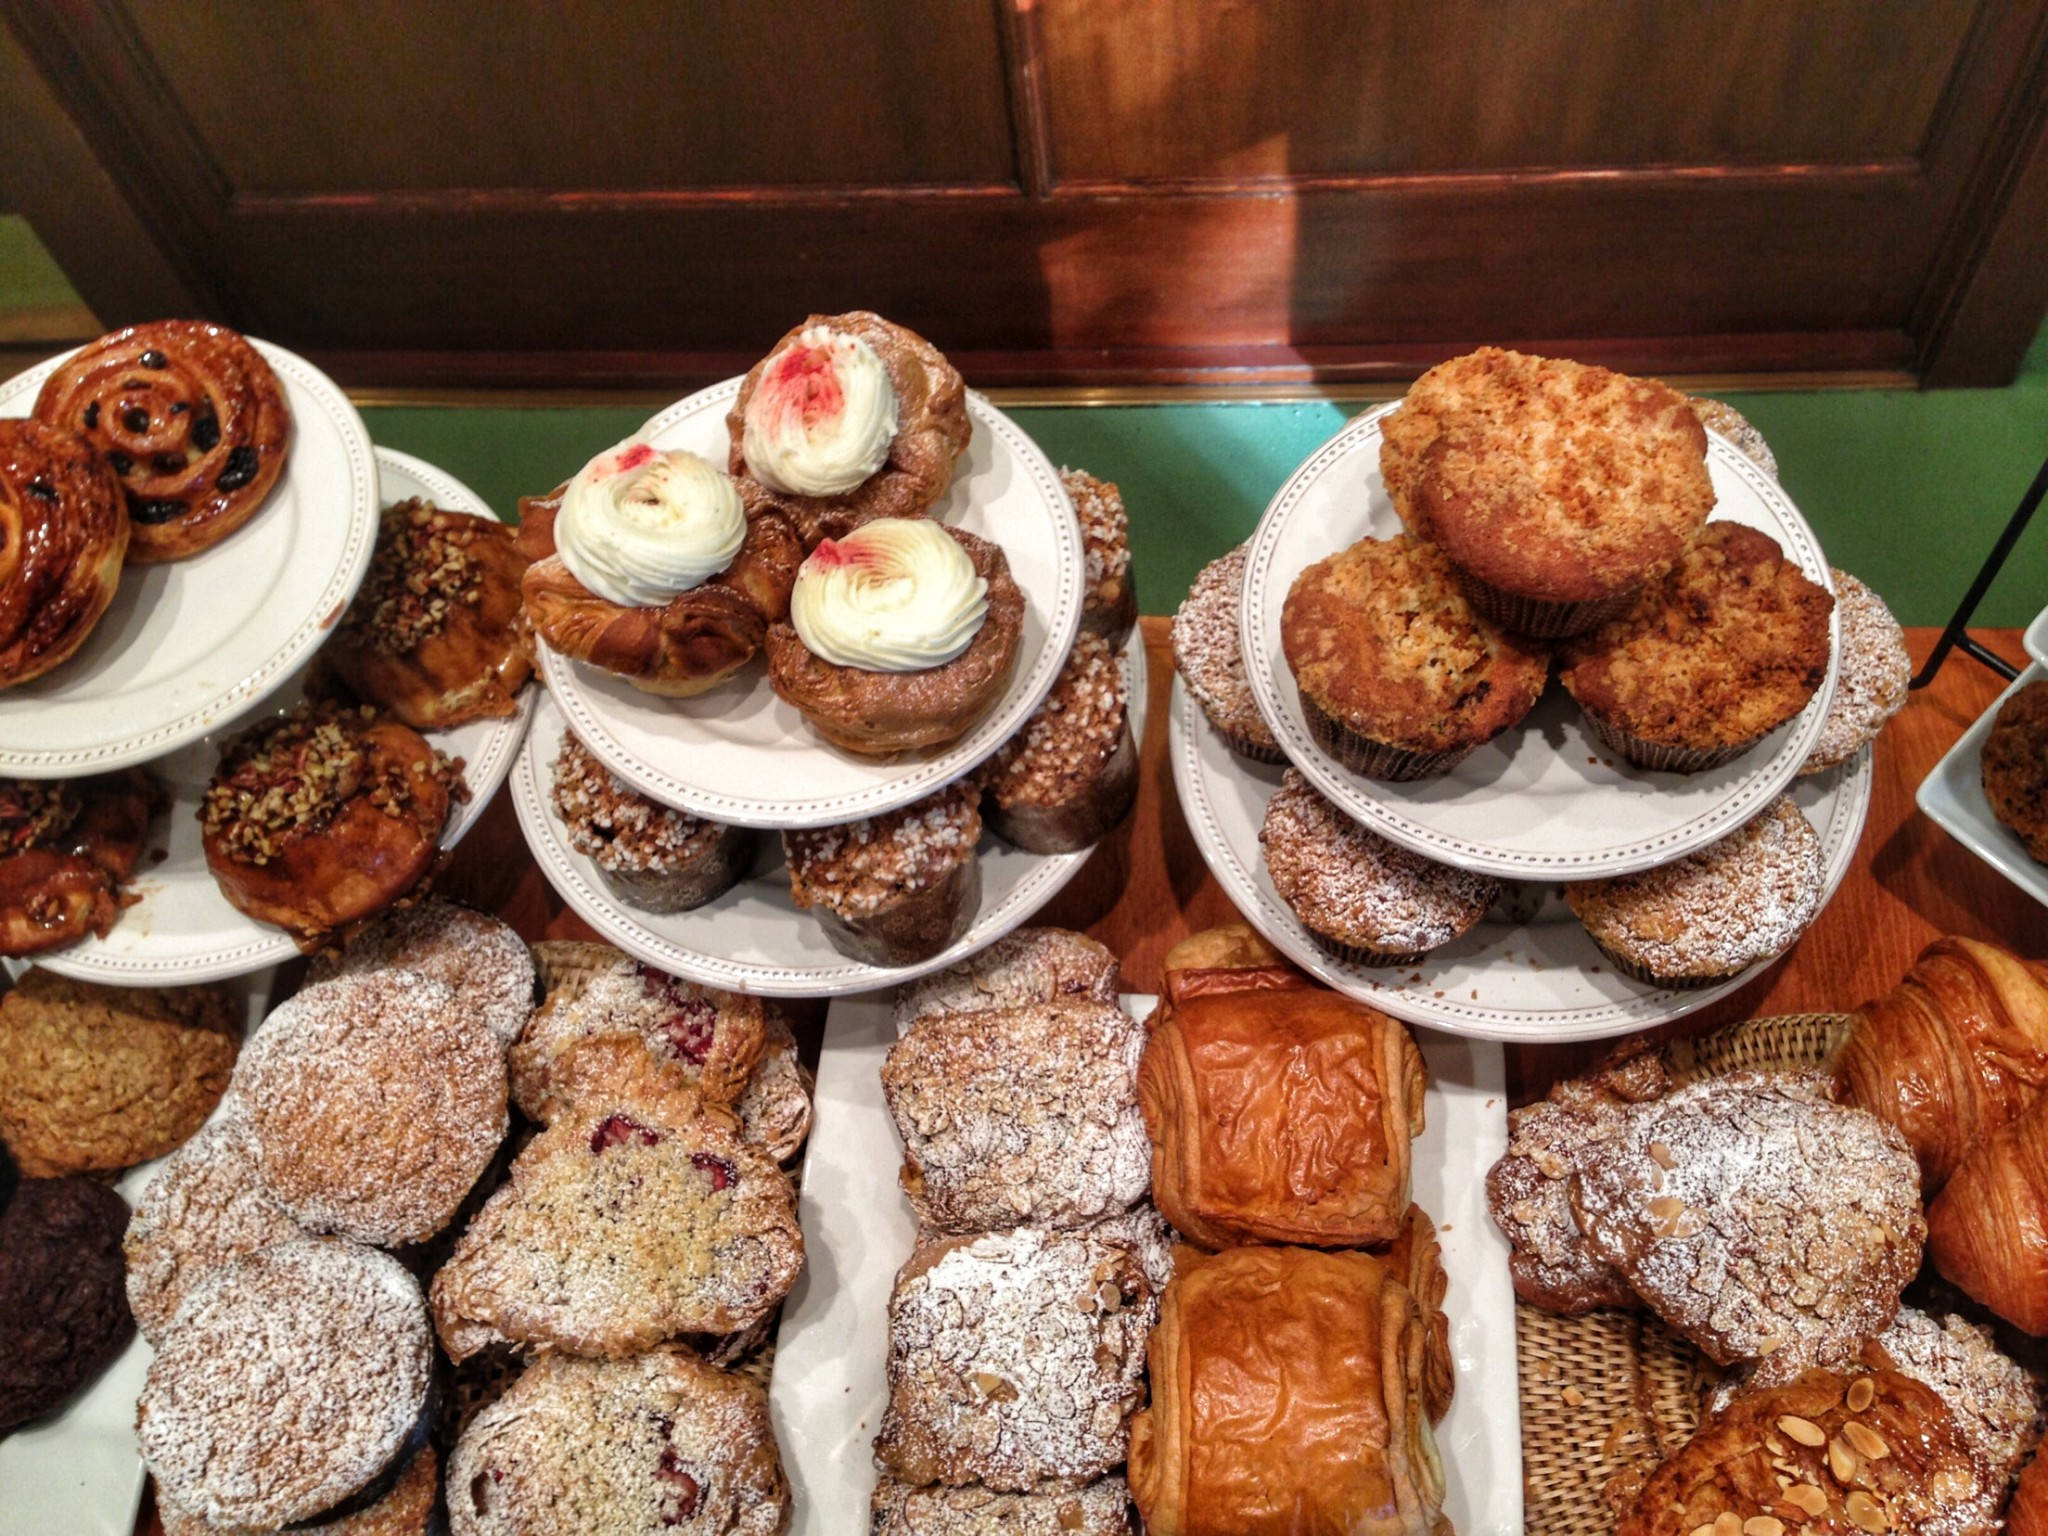 bouchon bakery, the-alyst.com